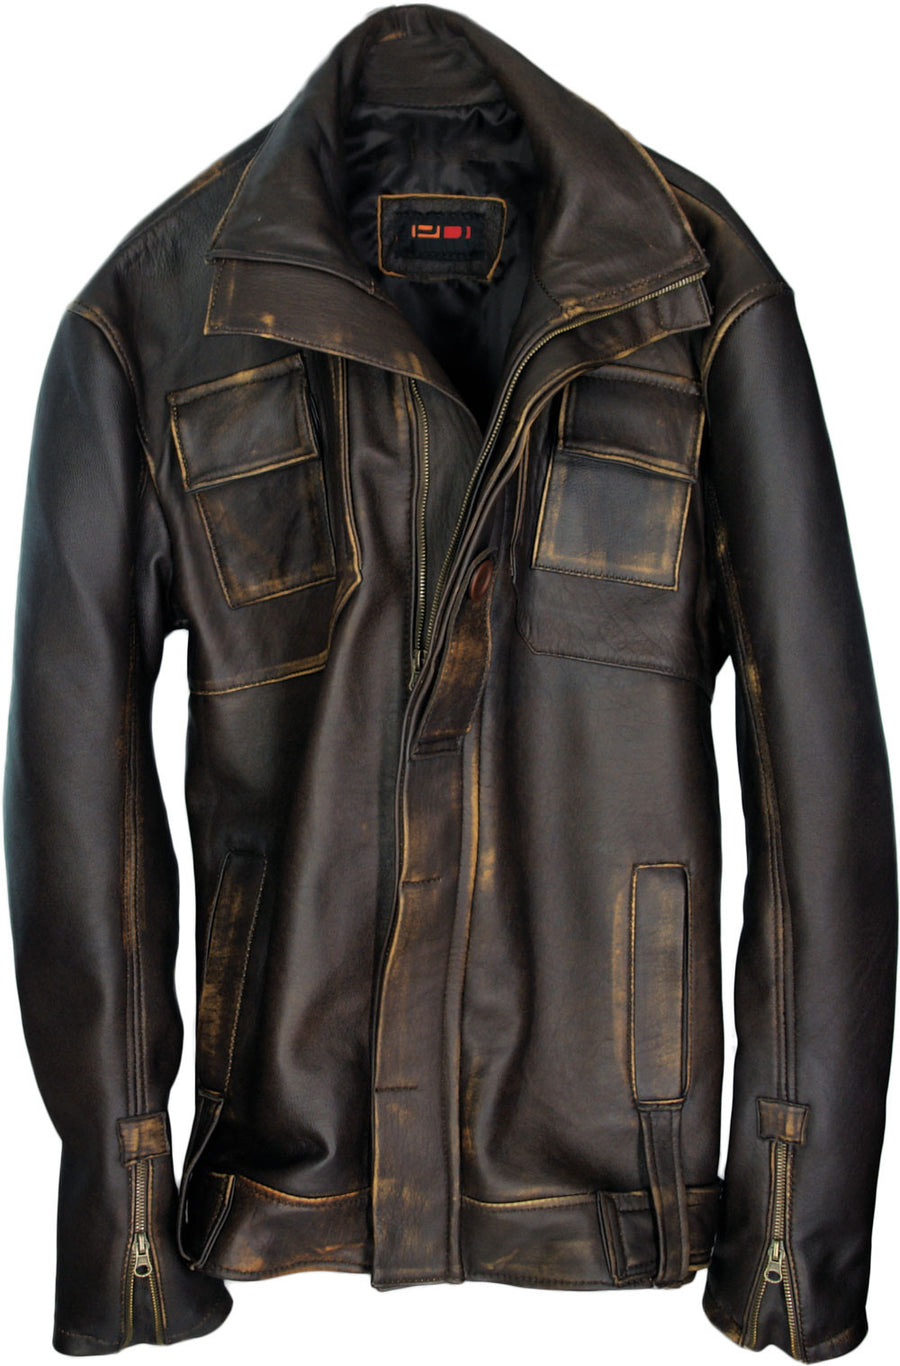 GHOST Leather Jacket Distressed Brown Mid-Length